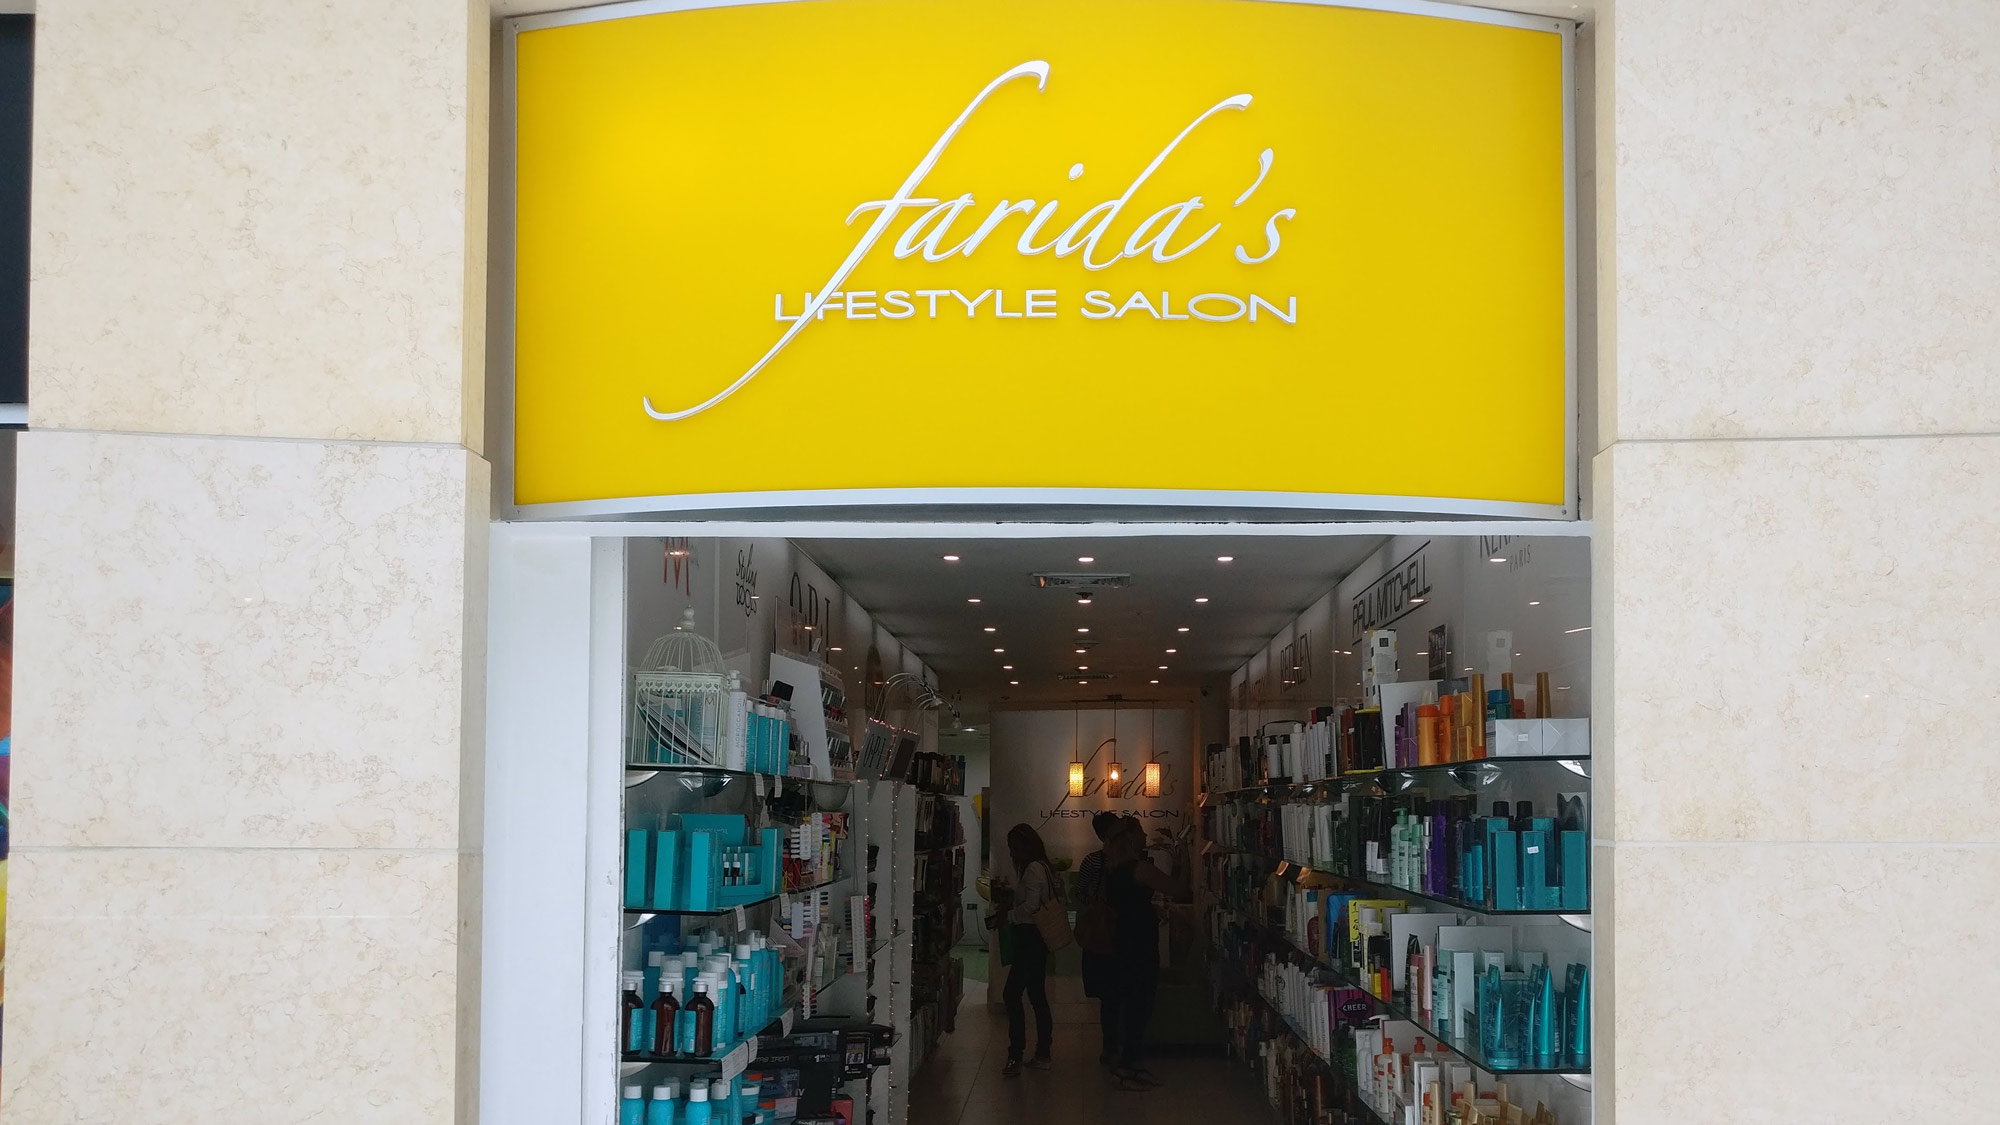 Farida's Lifestyle Salon